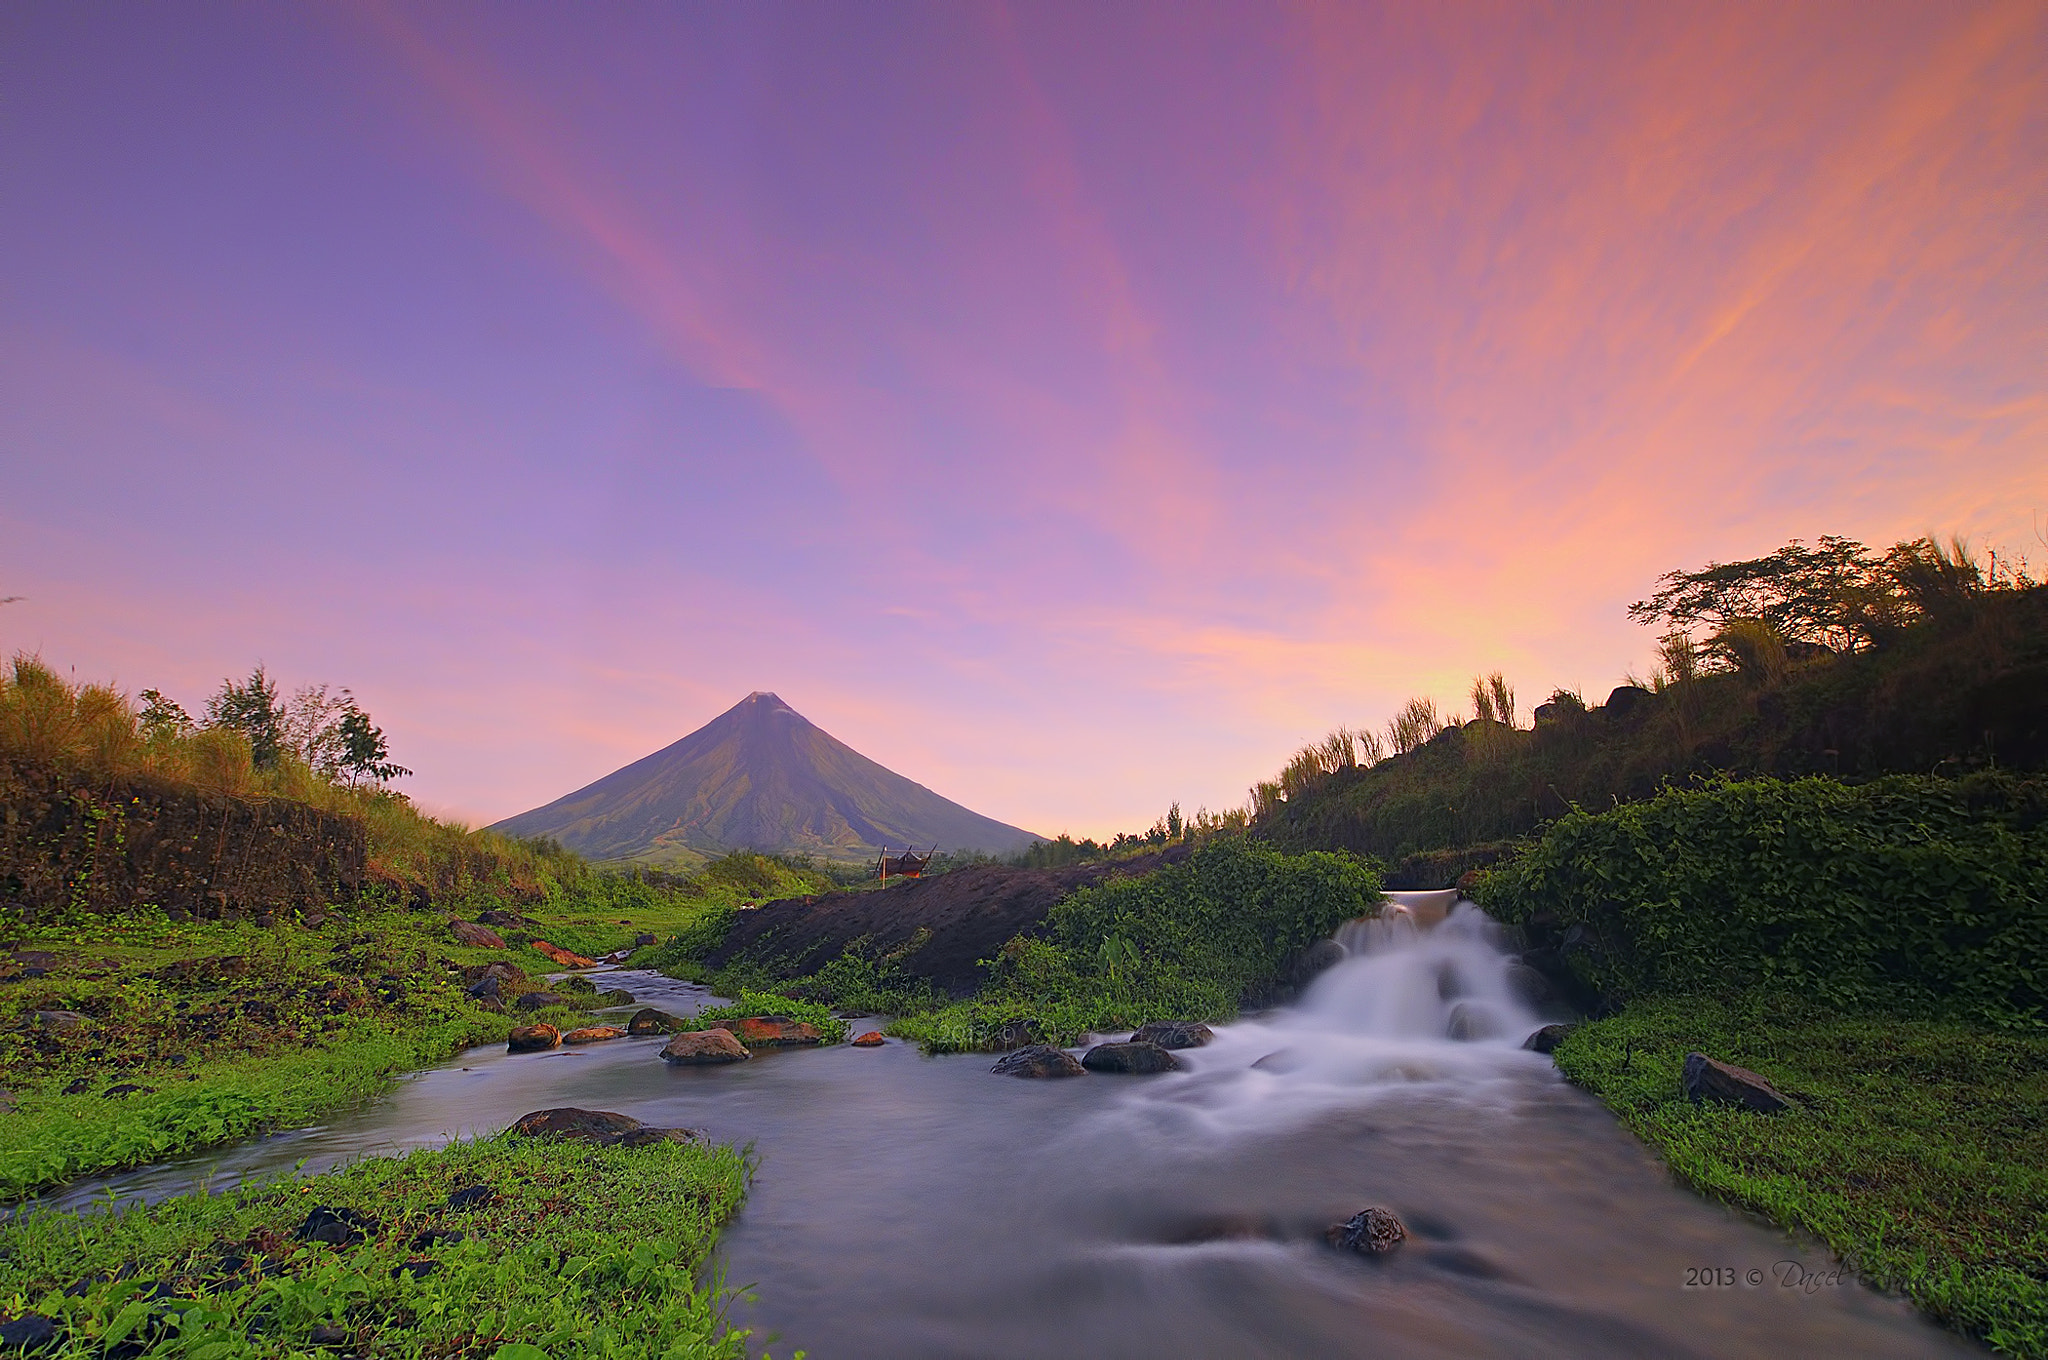 Photograph Early Morning Colors by Dacel Andes on 500px